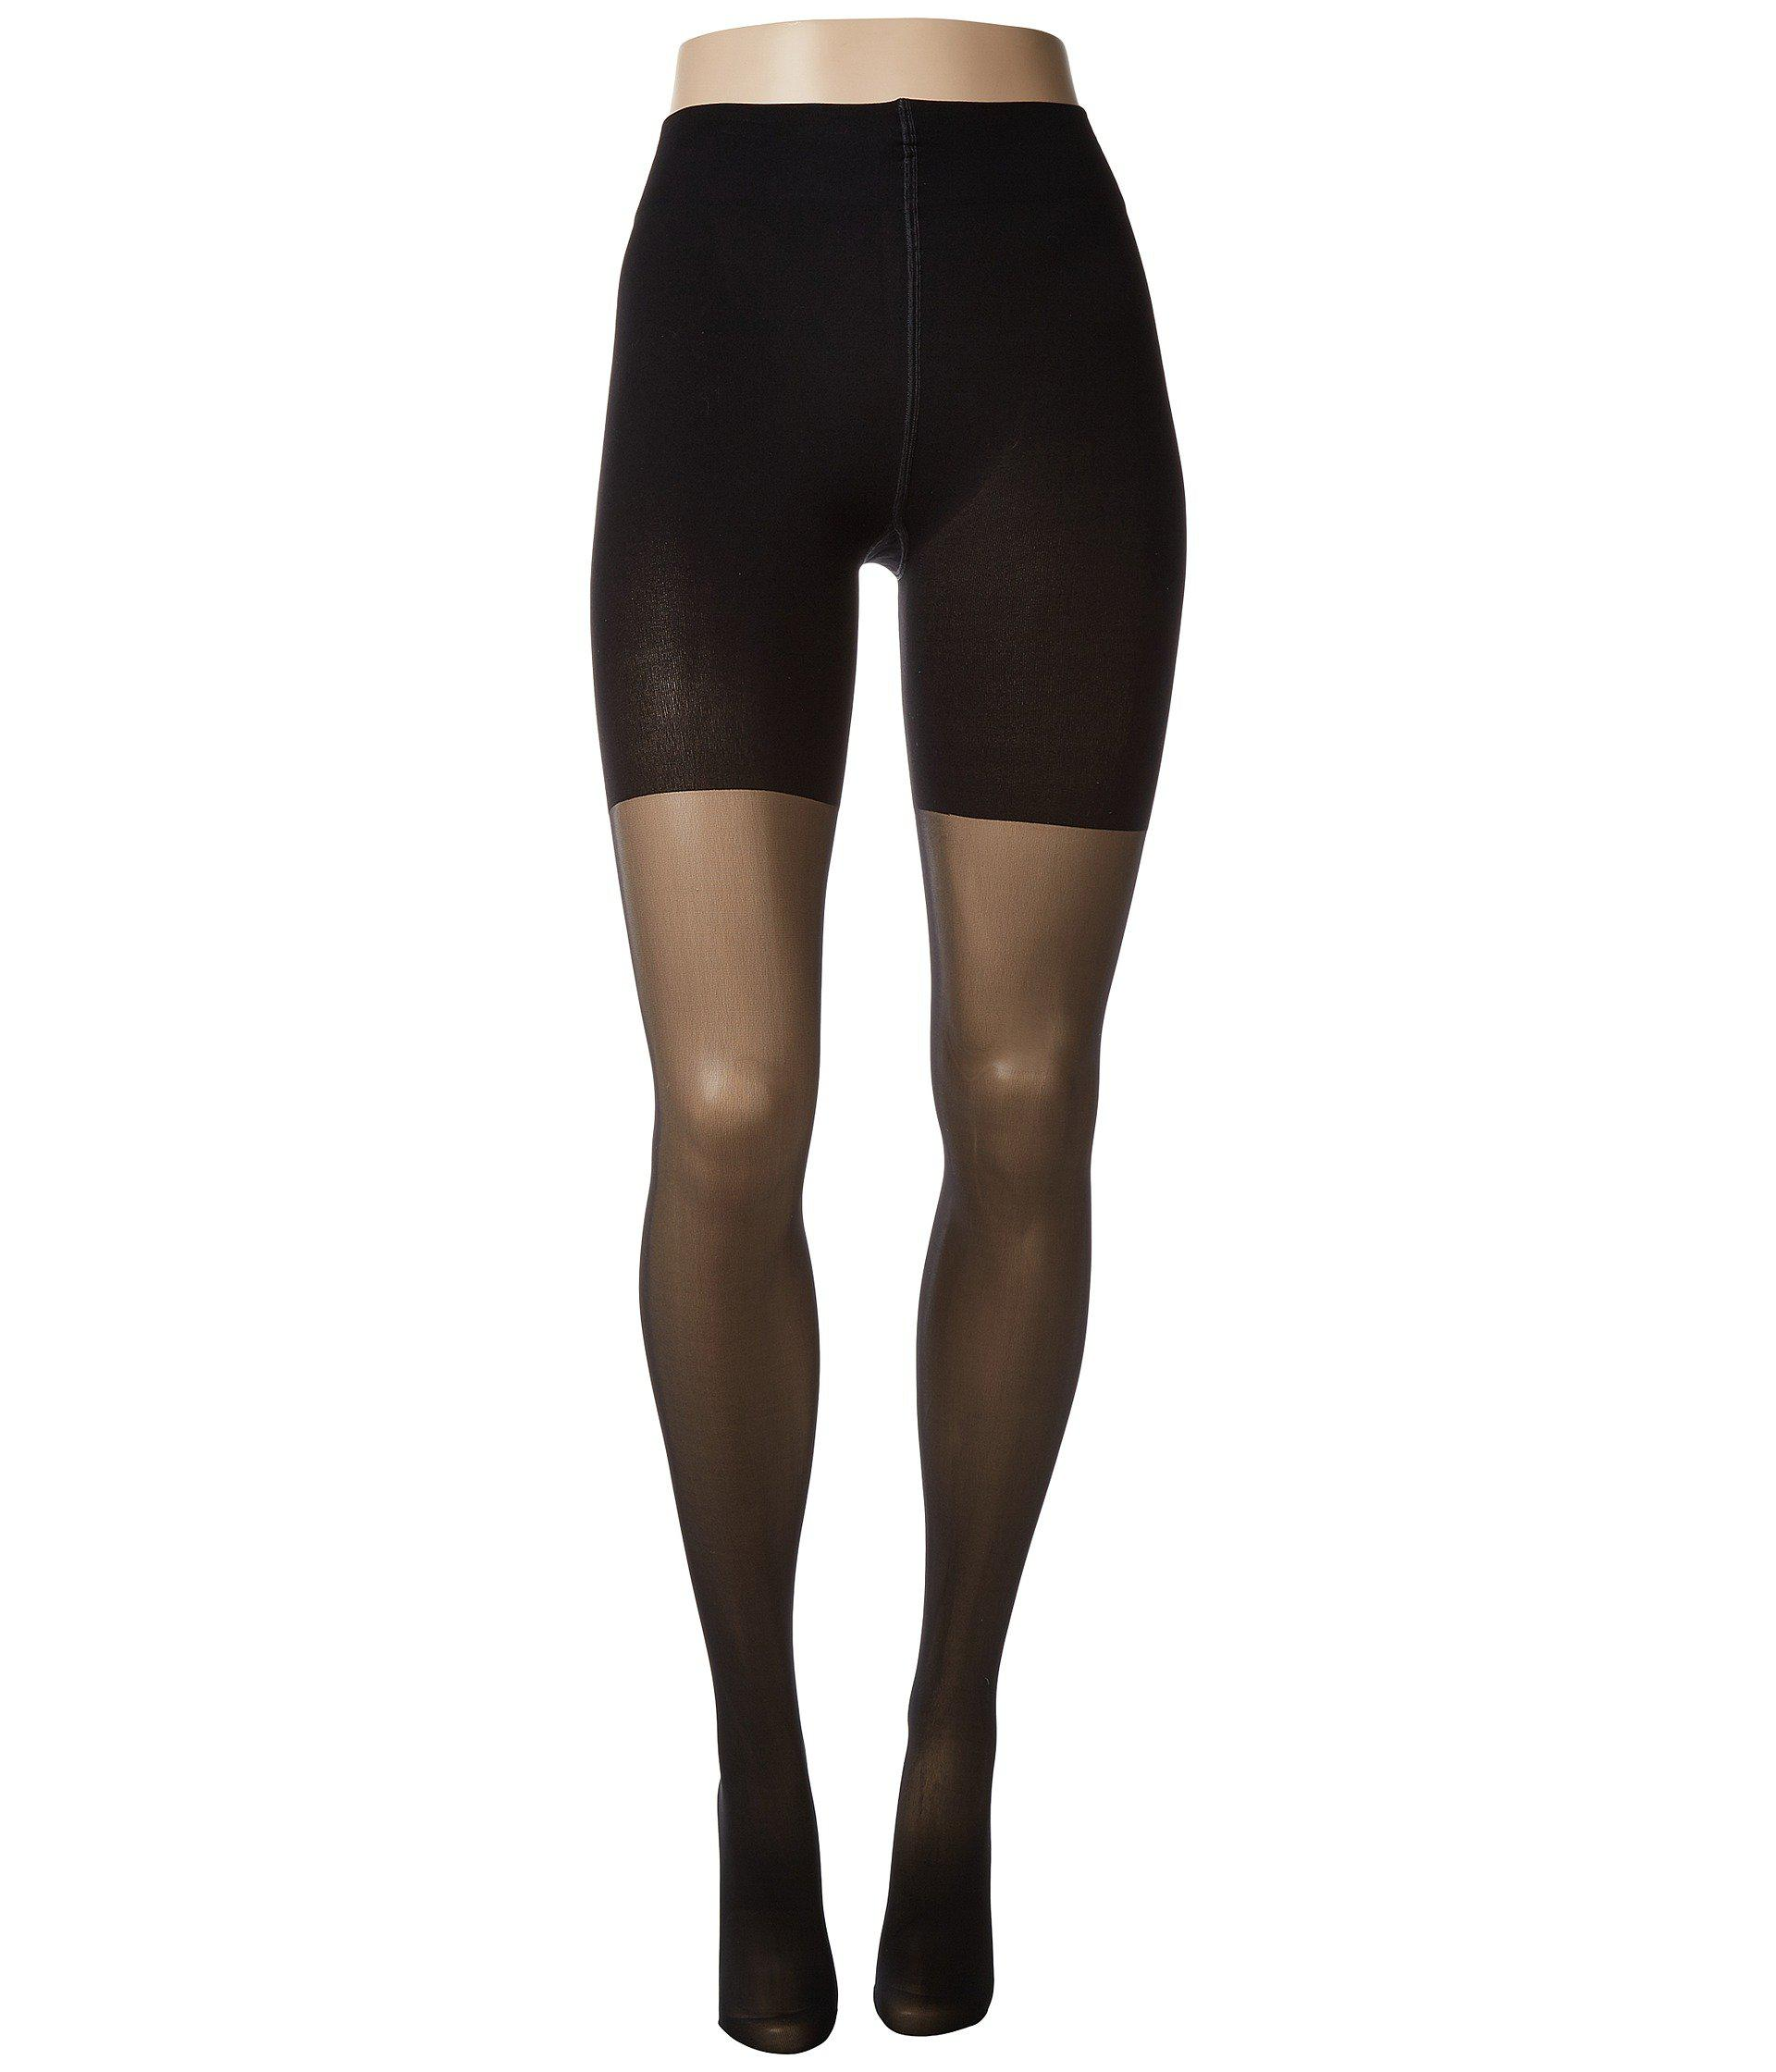 32cd19609ef Lyst - Falke Plus Size Beauty Plus 20 Tights (black) Hose in Black